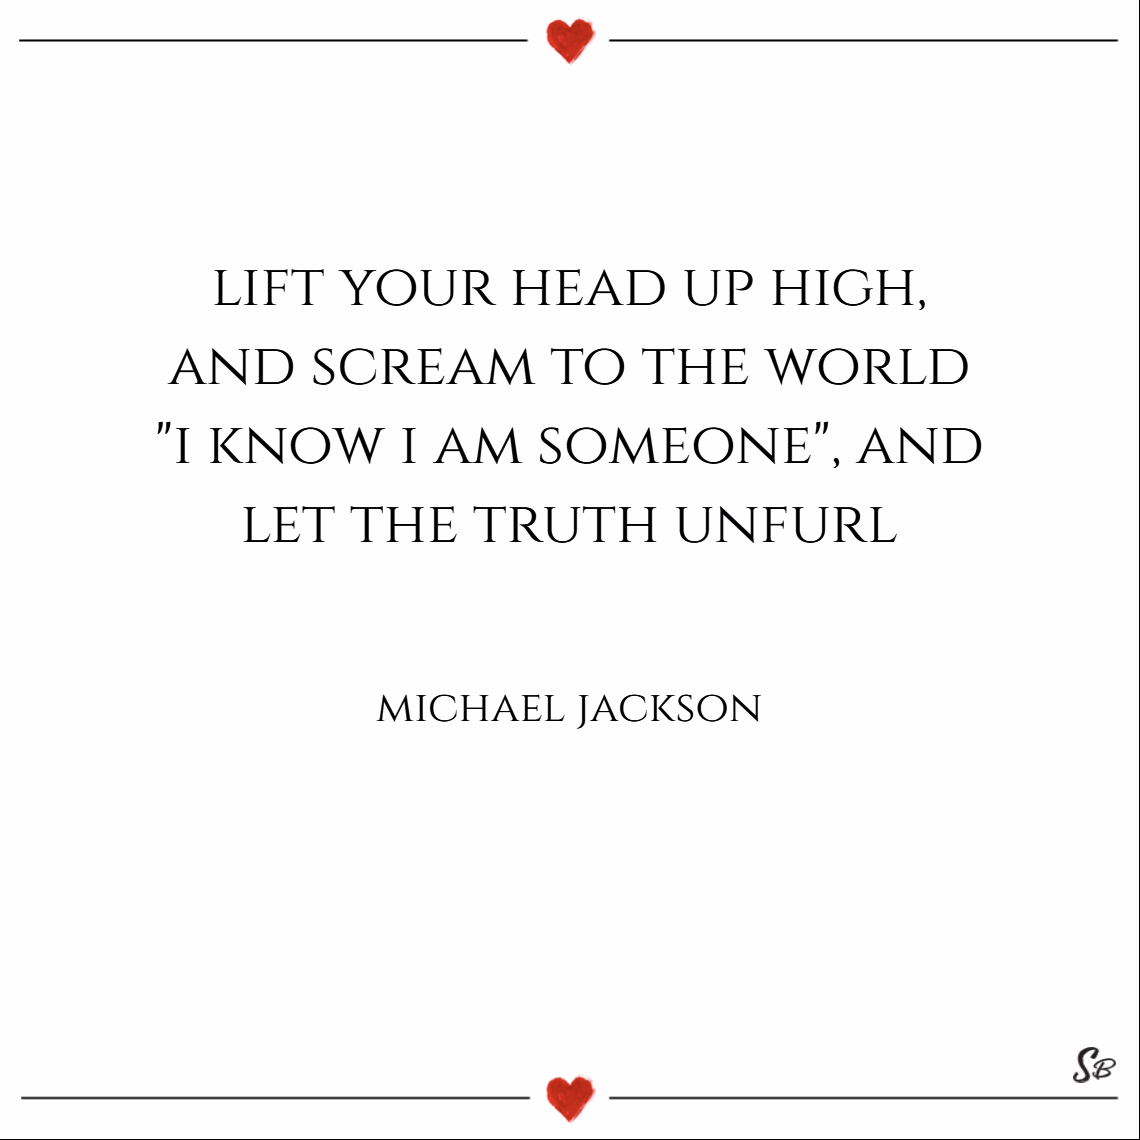 Lift your head up high, and scream to the world. i know i am someone, and let the truth unfurl. – michael jackson